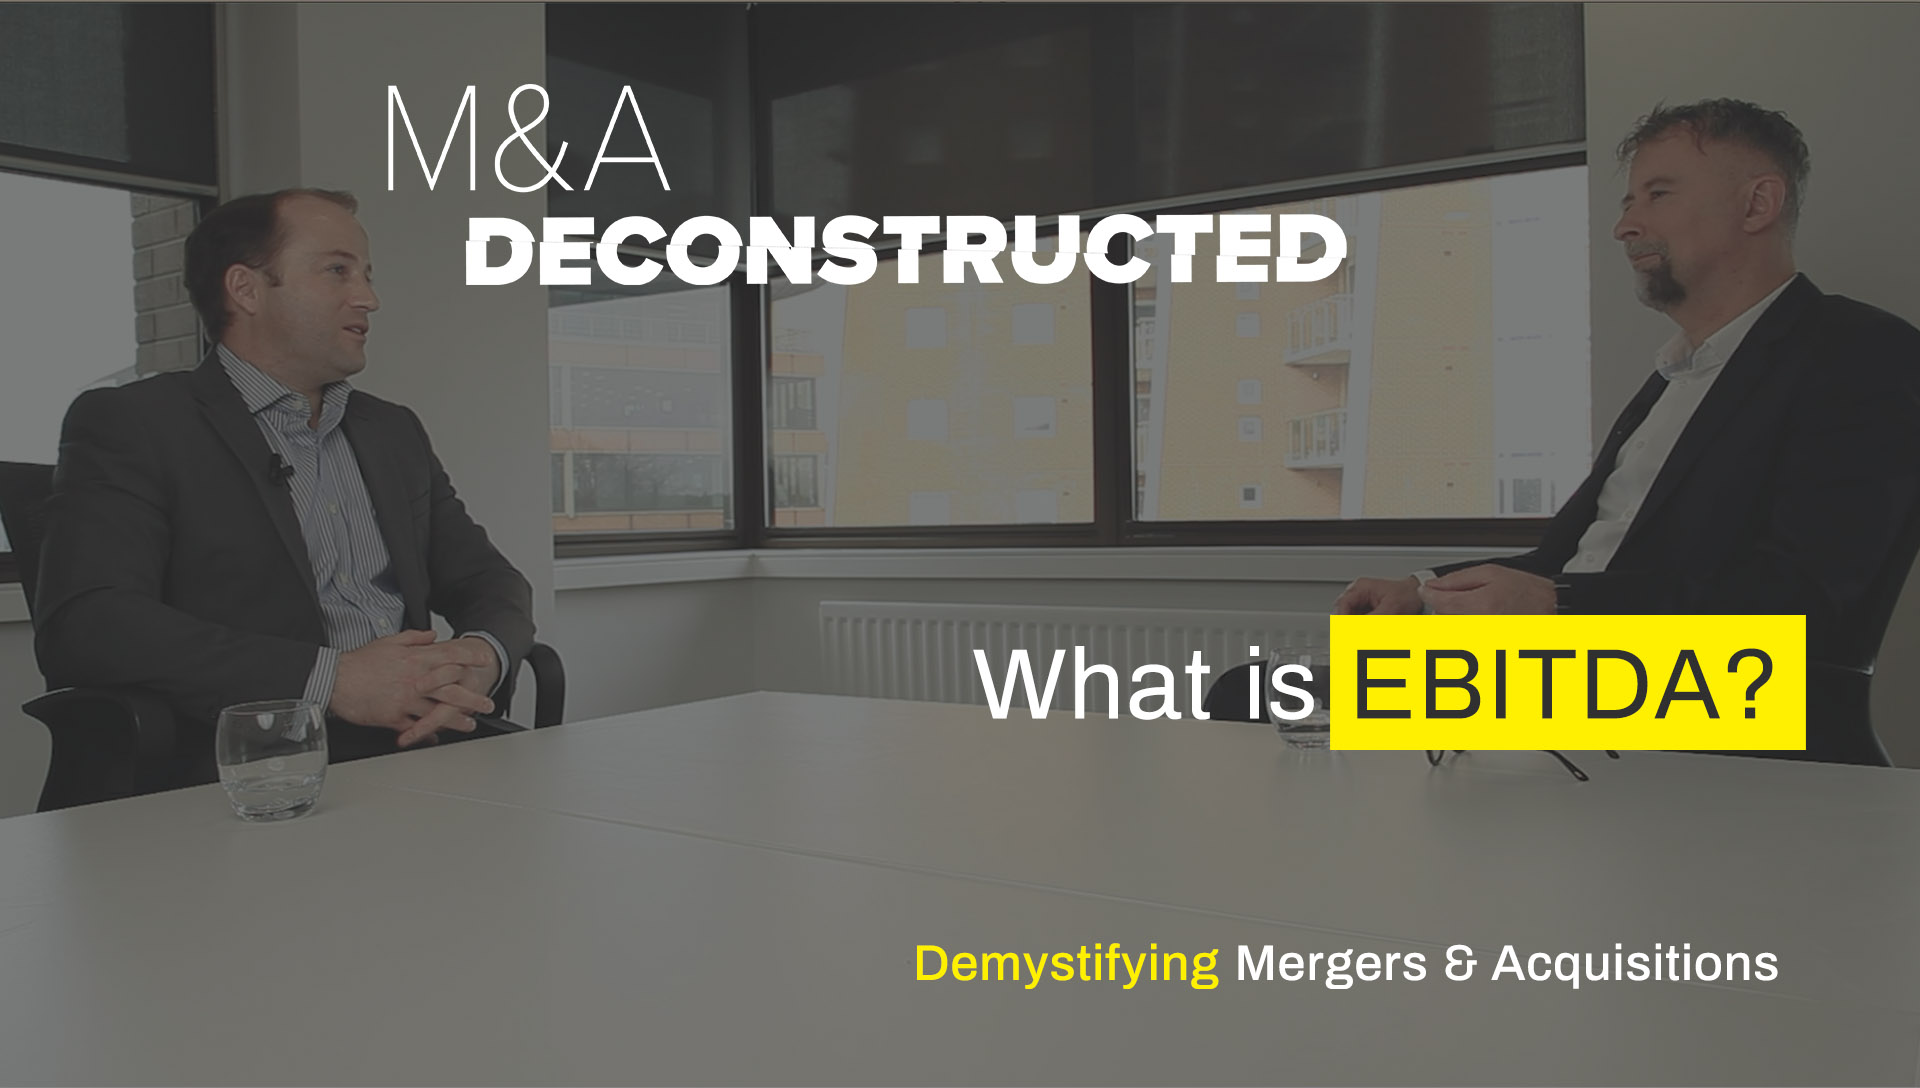 M&A Deconstructed - What is EBITDA?